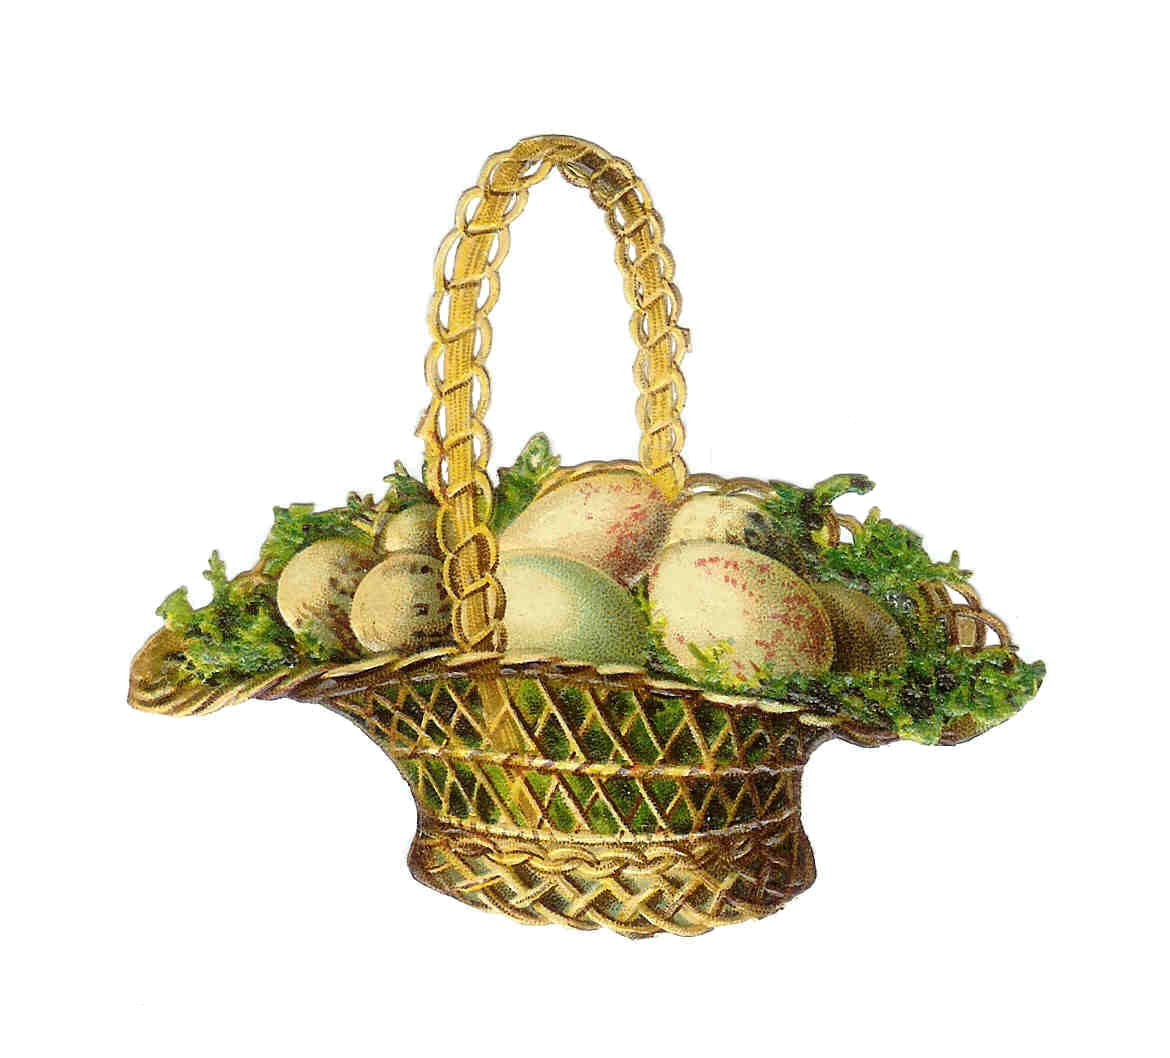 Happy easter png vintage. Basket freeuse download rr